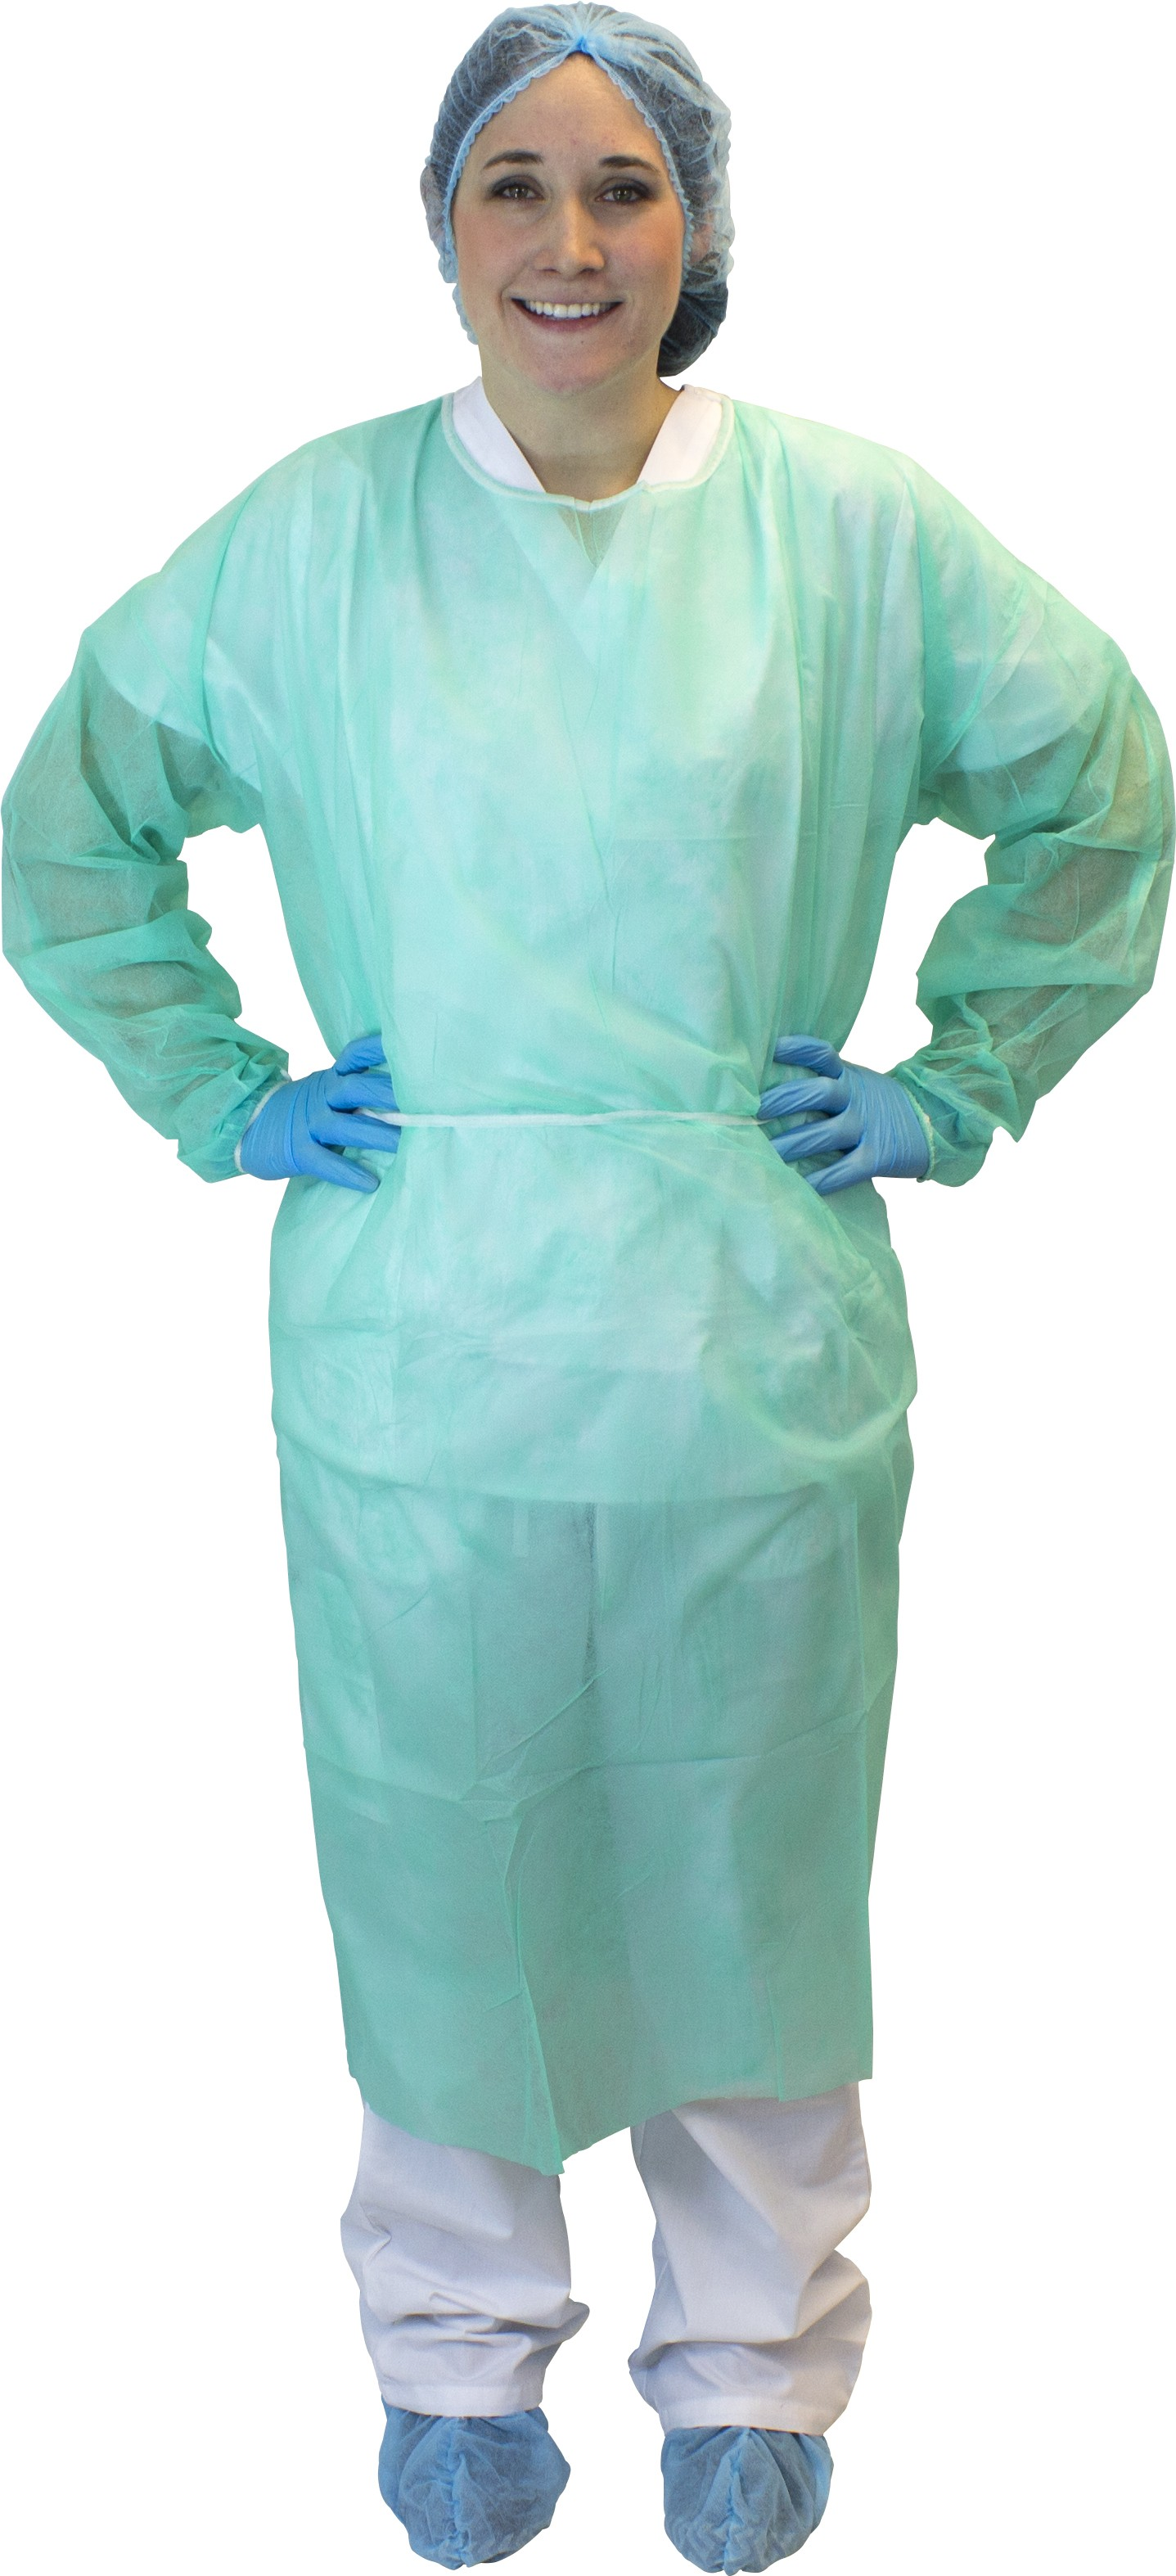 Green Polypropylene Isolation Gown